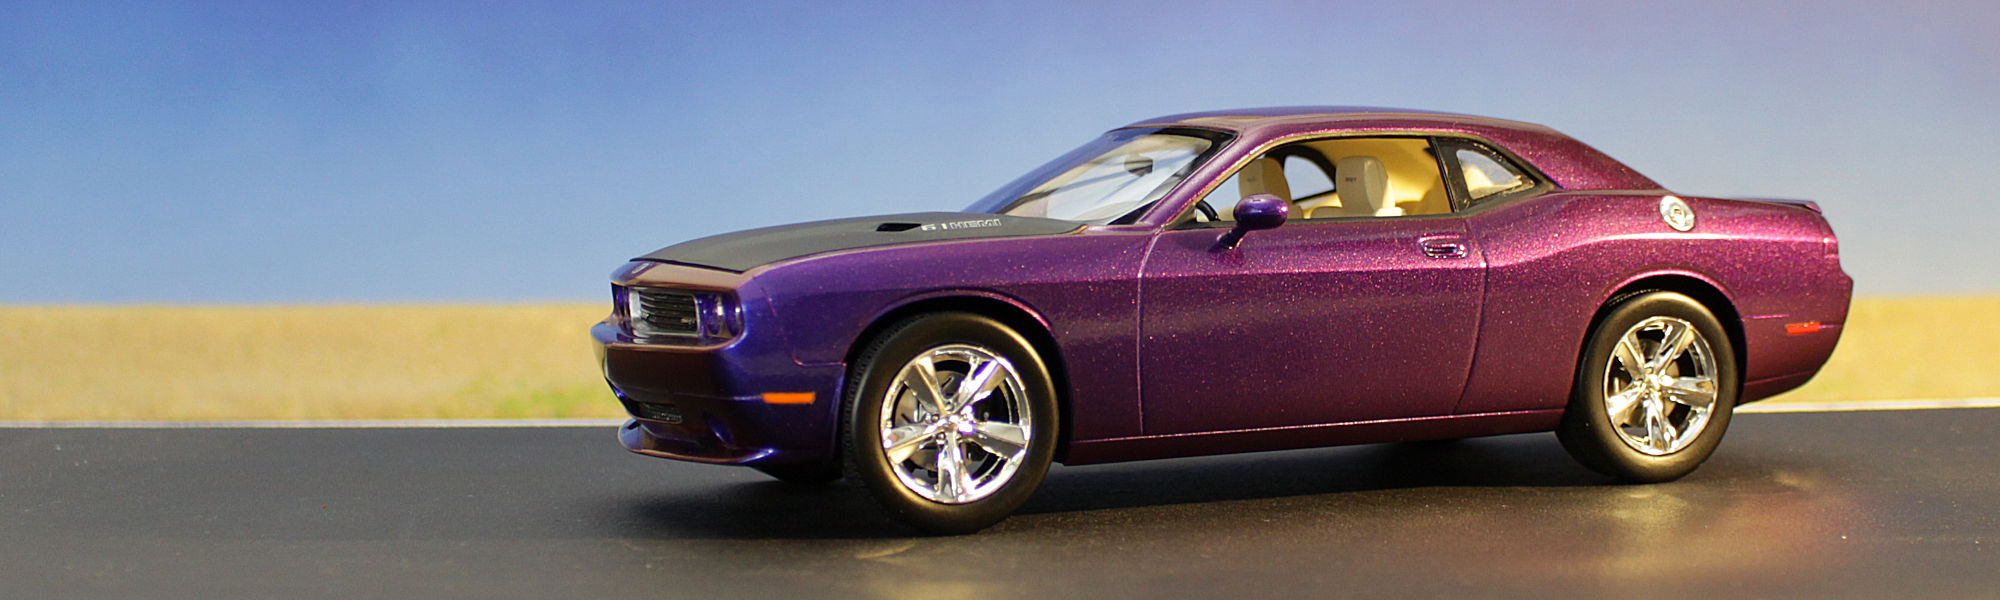 '09 Dodge Challenger SRT8